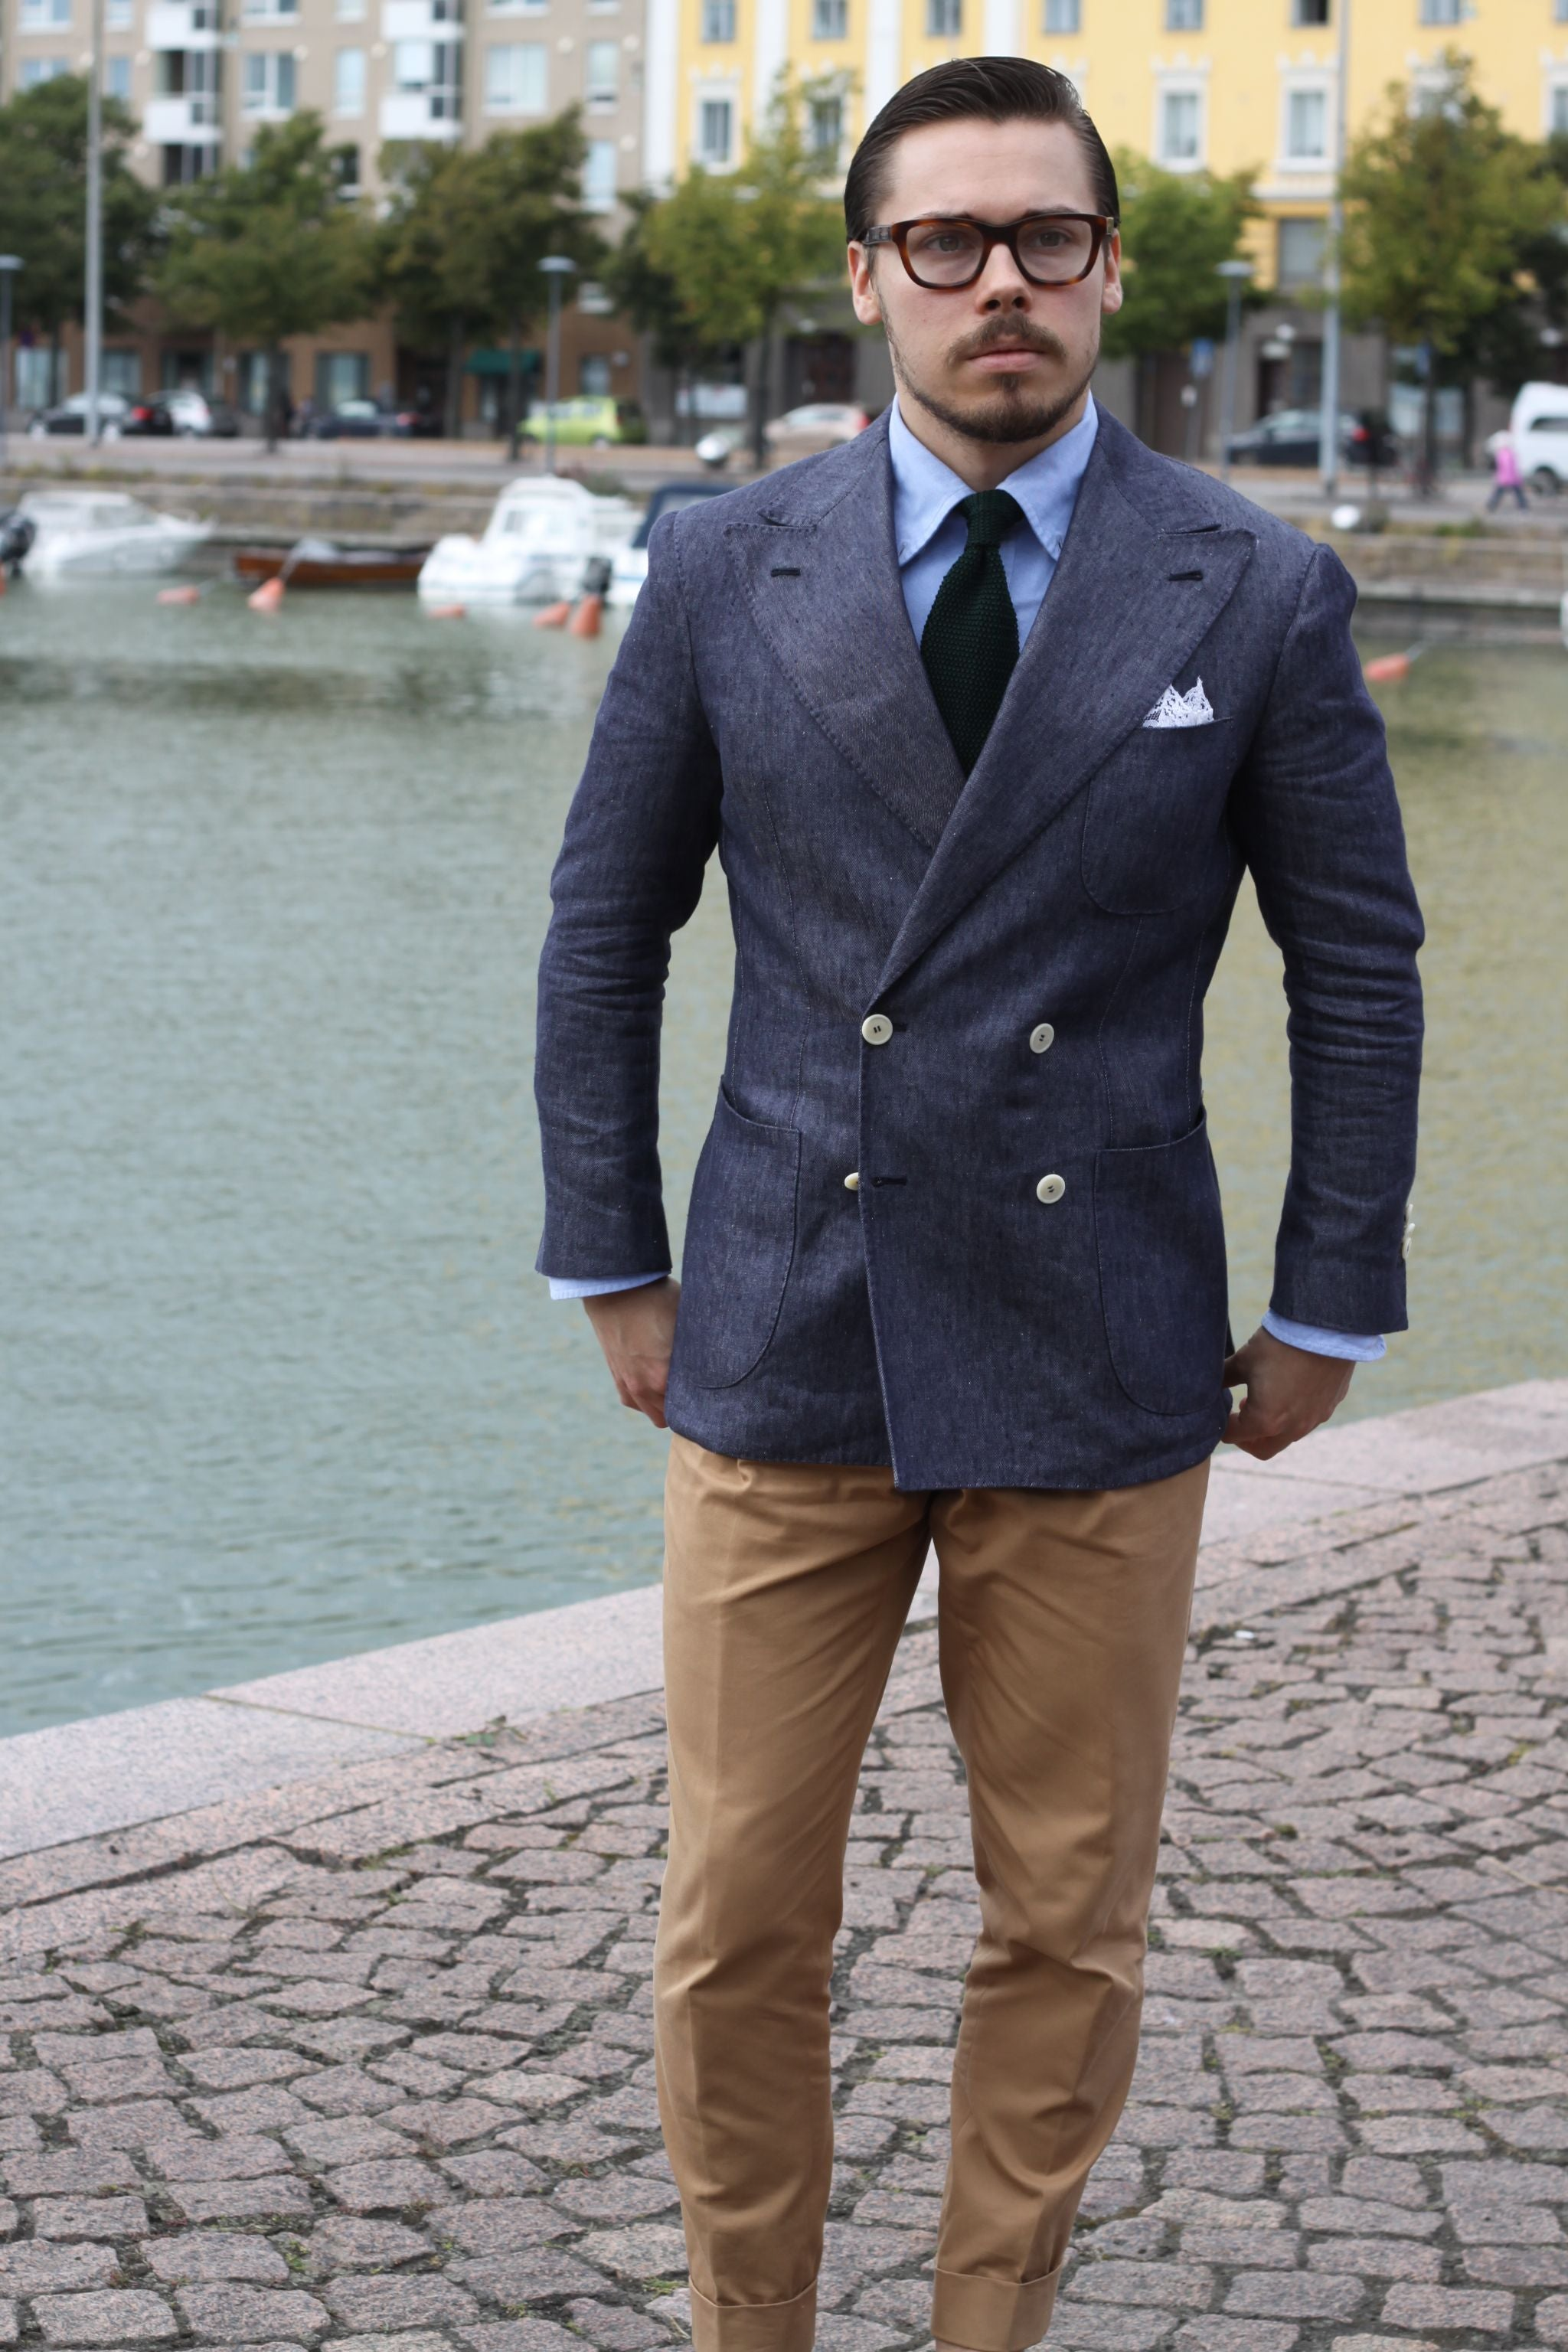 Cotton suit trousers and a blazer